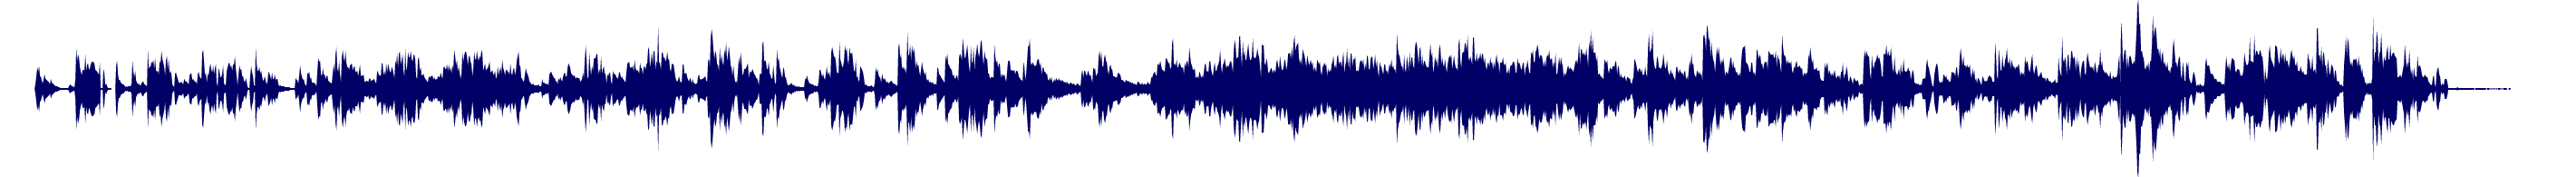 waveform of track #85488